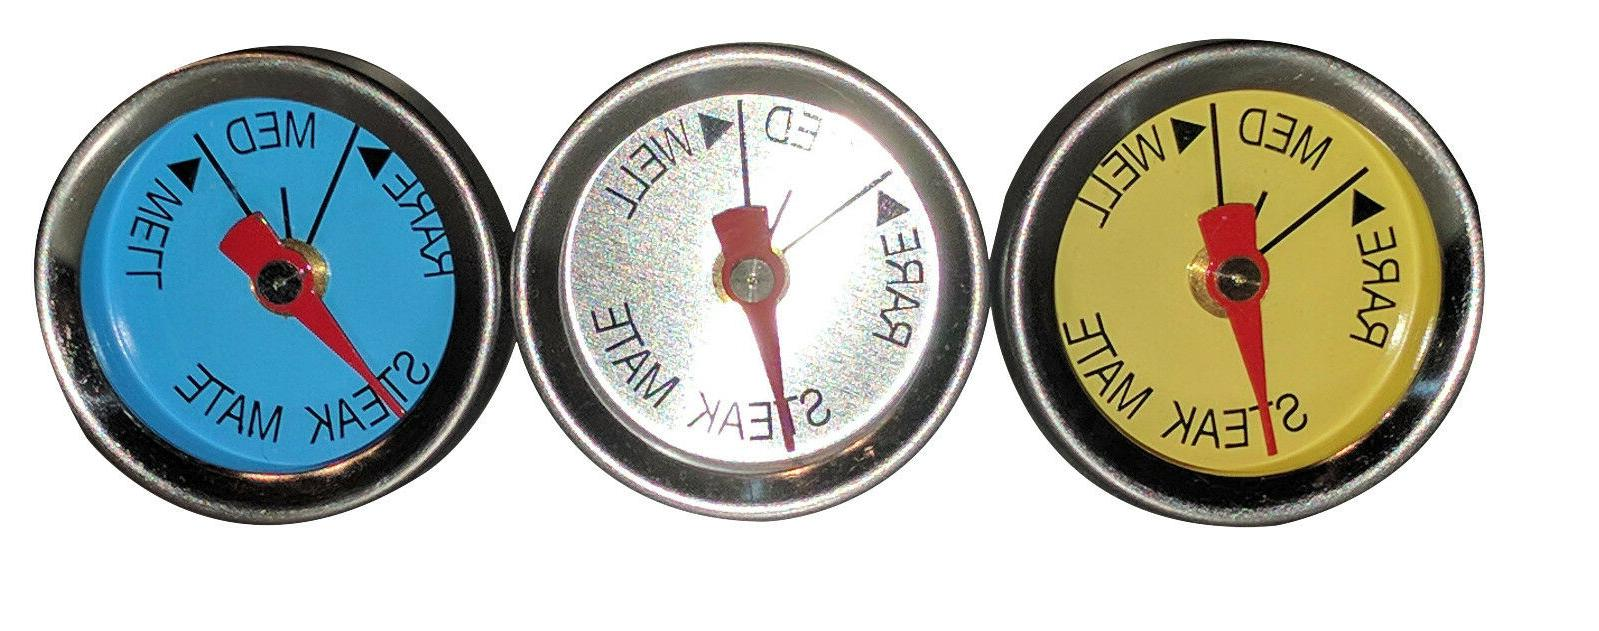 New Set of 3 Steak Mate Mini Thermometers Oven